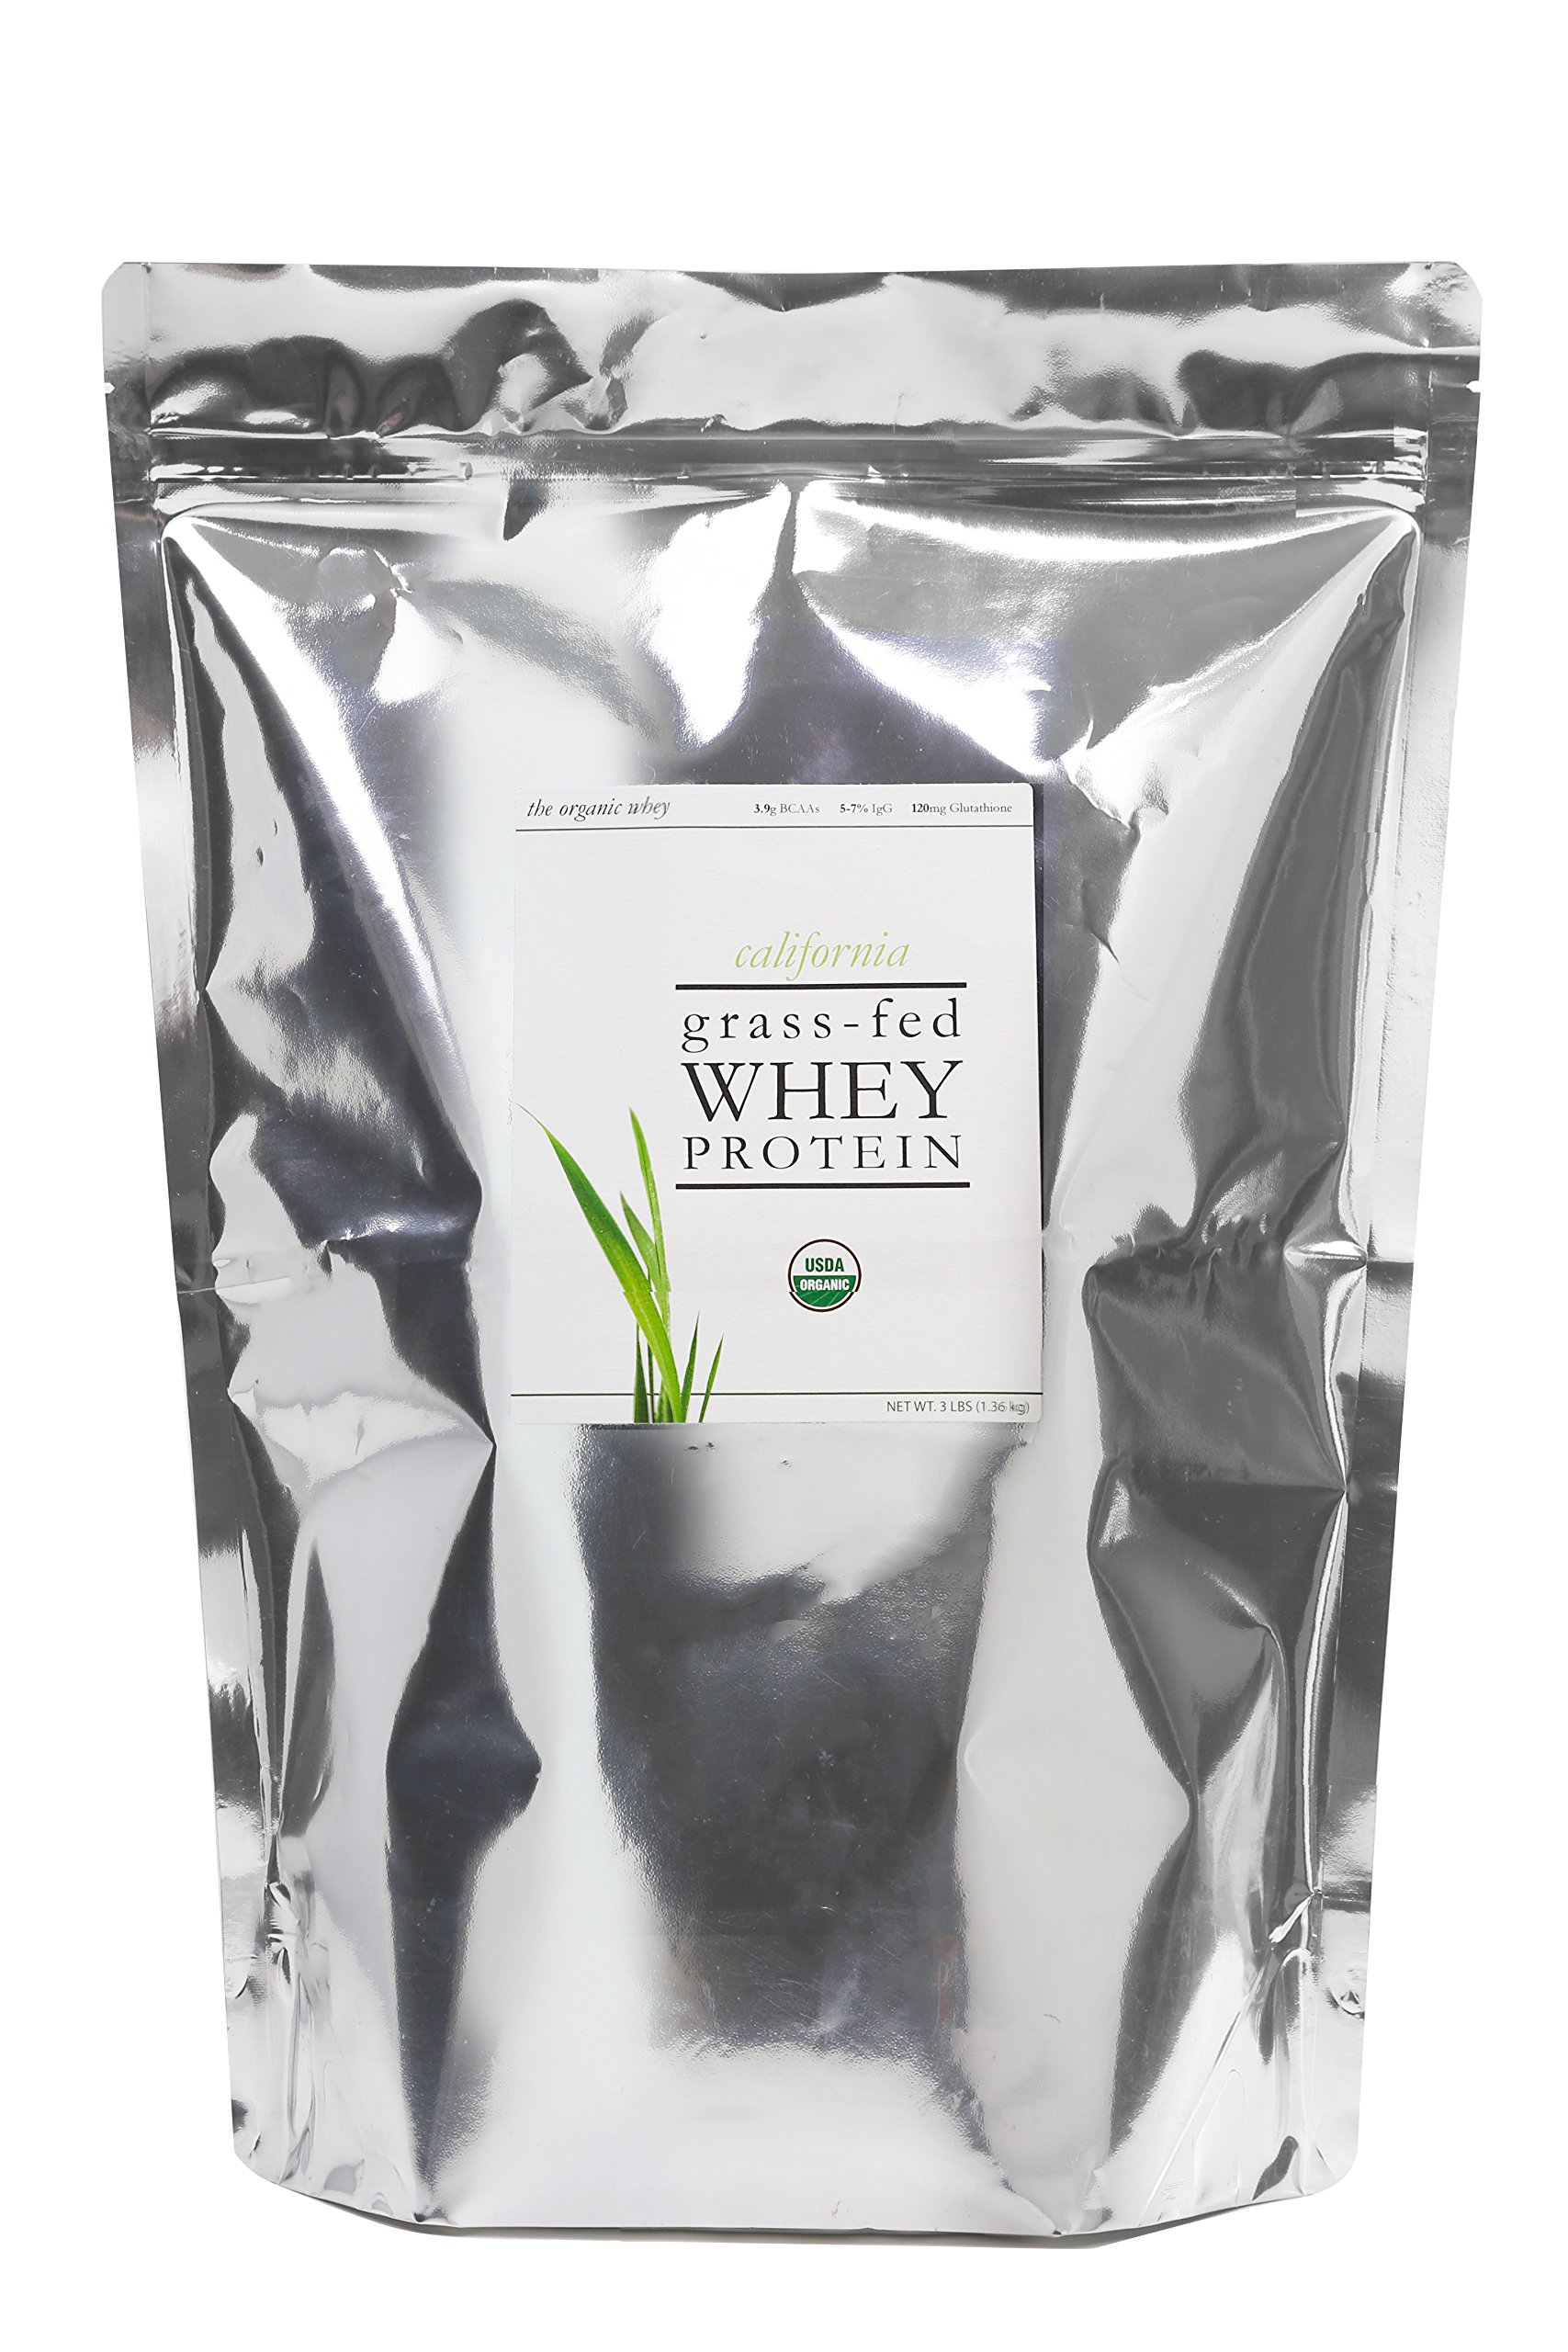 The Organic Whey Protein Powder - 100% Grass Fed Whey Protein - Gluten-free, Non-GMO, USDA Certified Organic Whey Protein - Unflavored Whey Protein Powder - Bulk Bag, 3 lbs by The Organic Whey